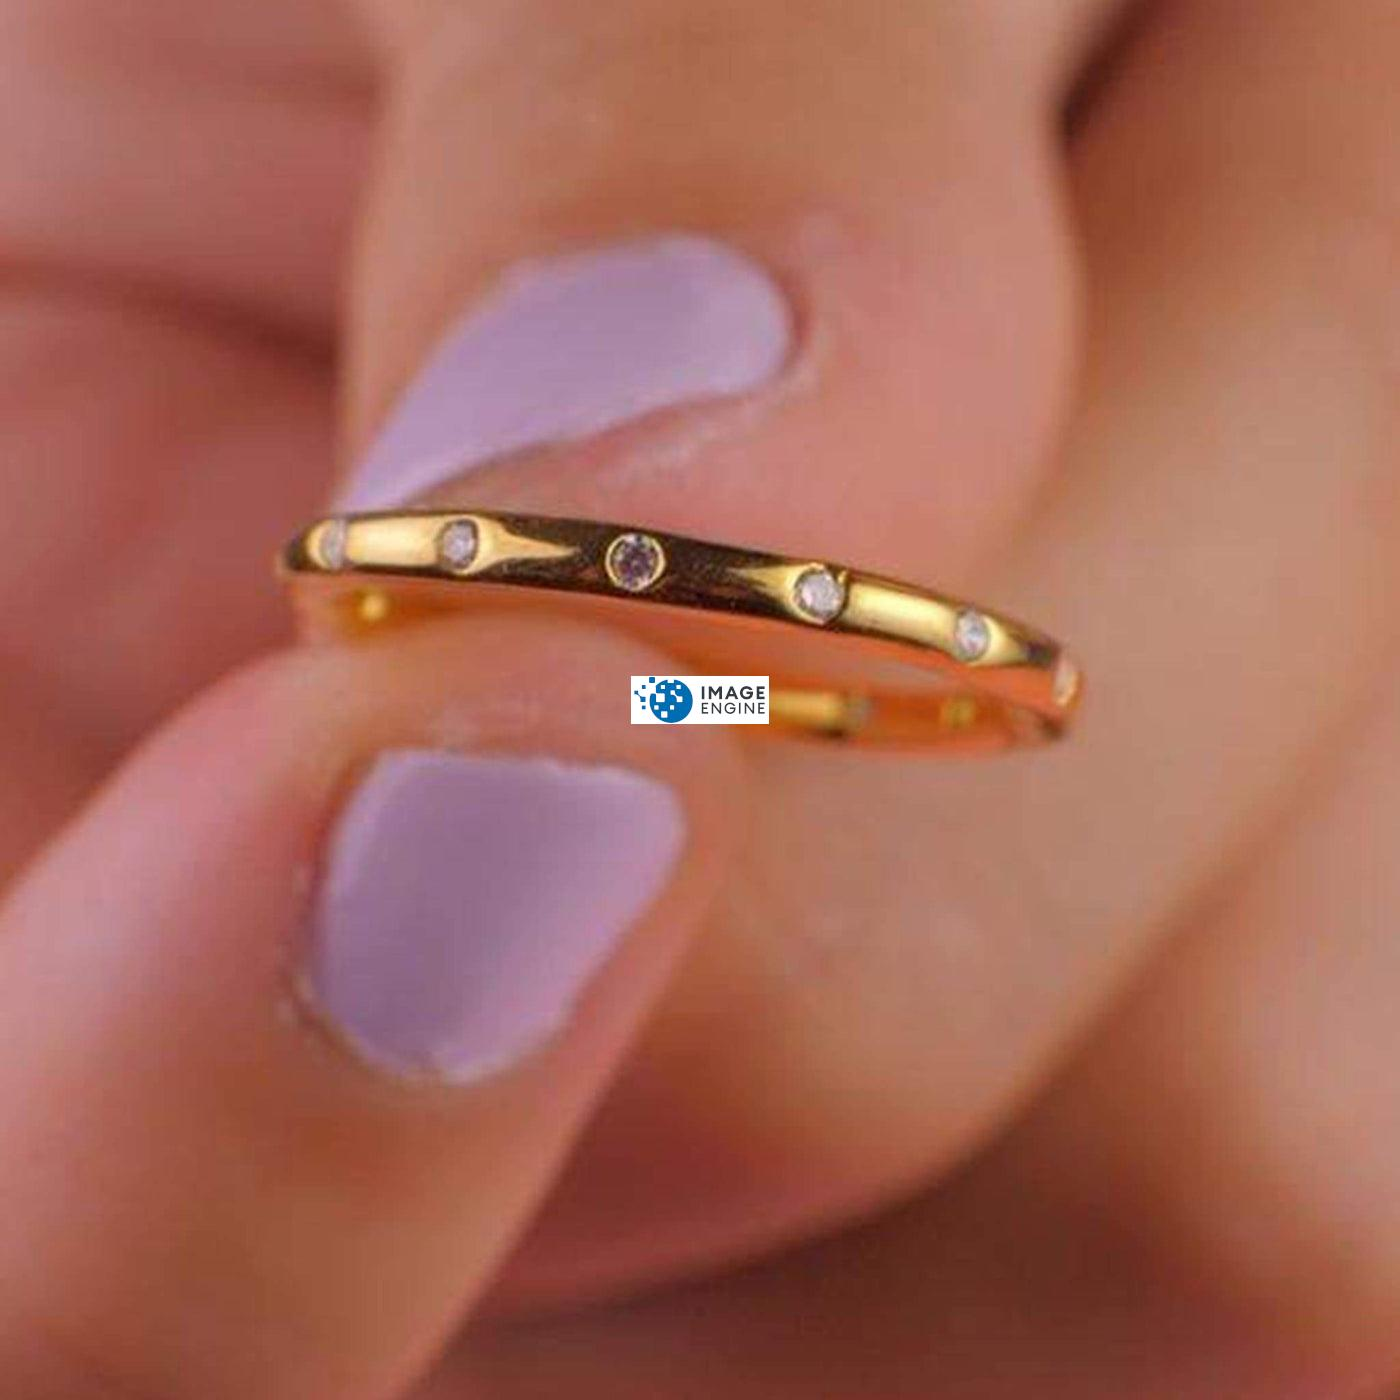 Droplet Ring - Holding Ring - 18K Yellow Gold Vermeil